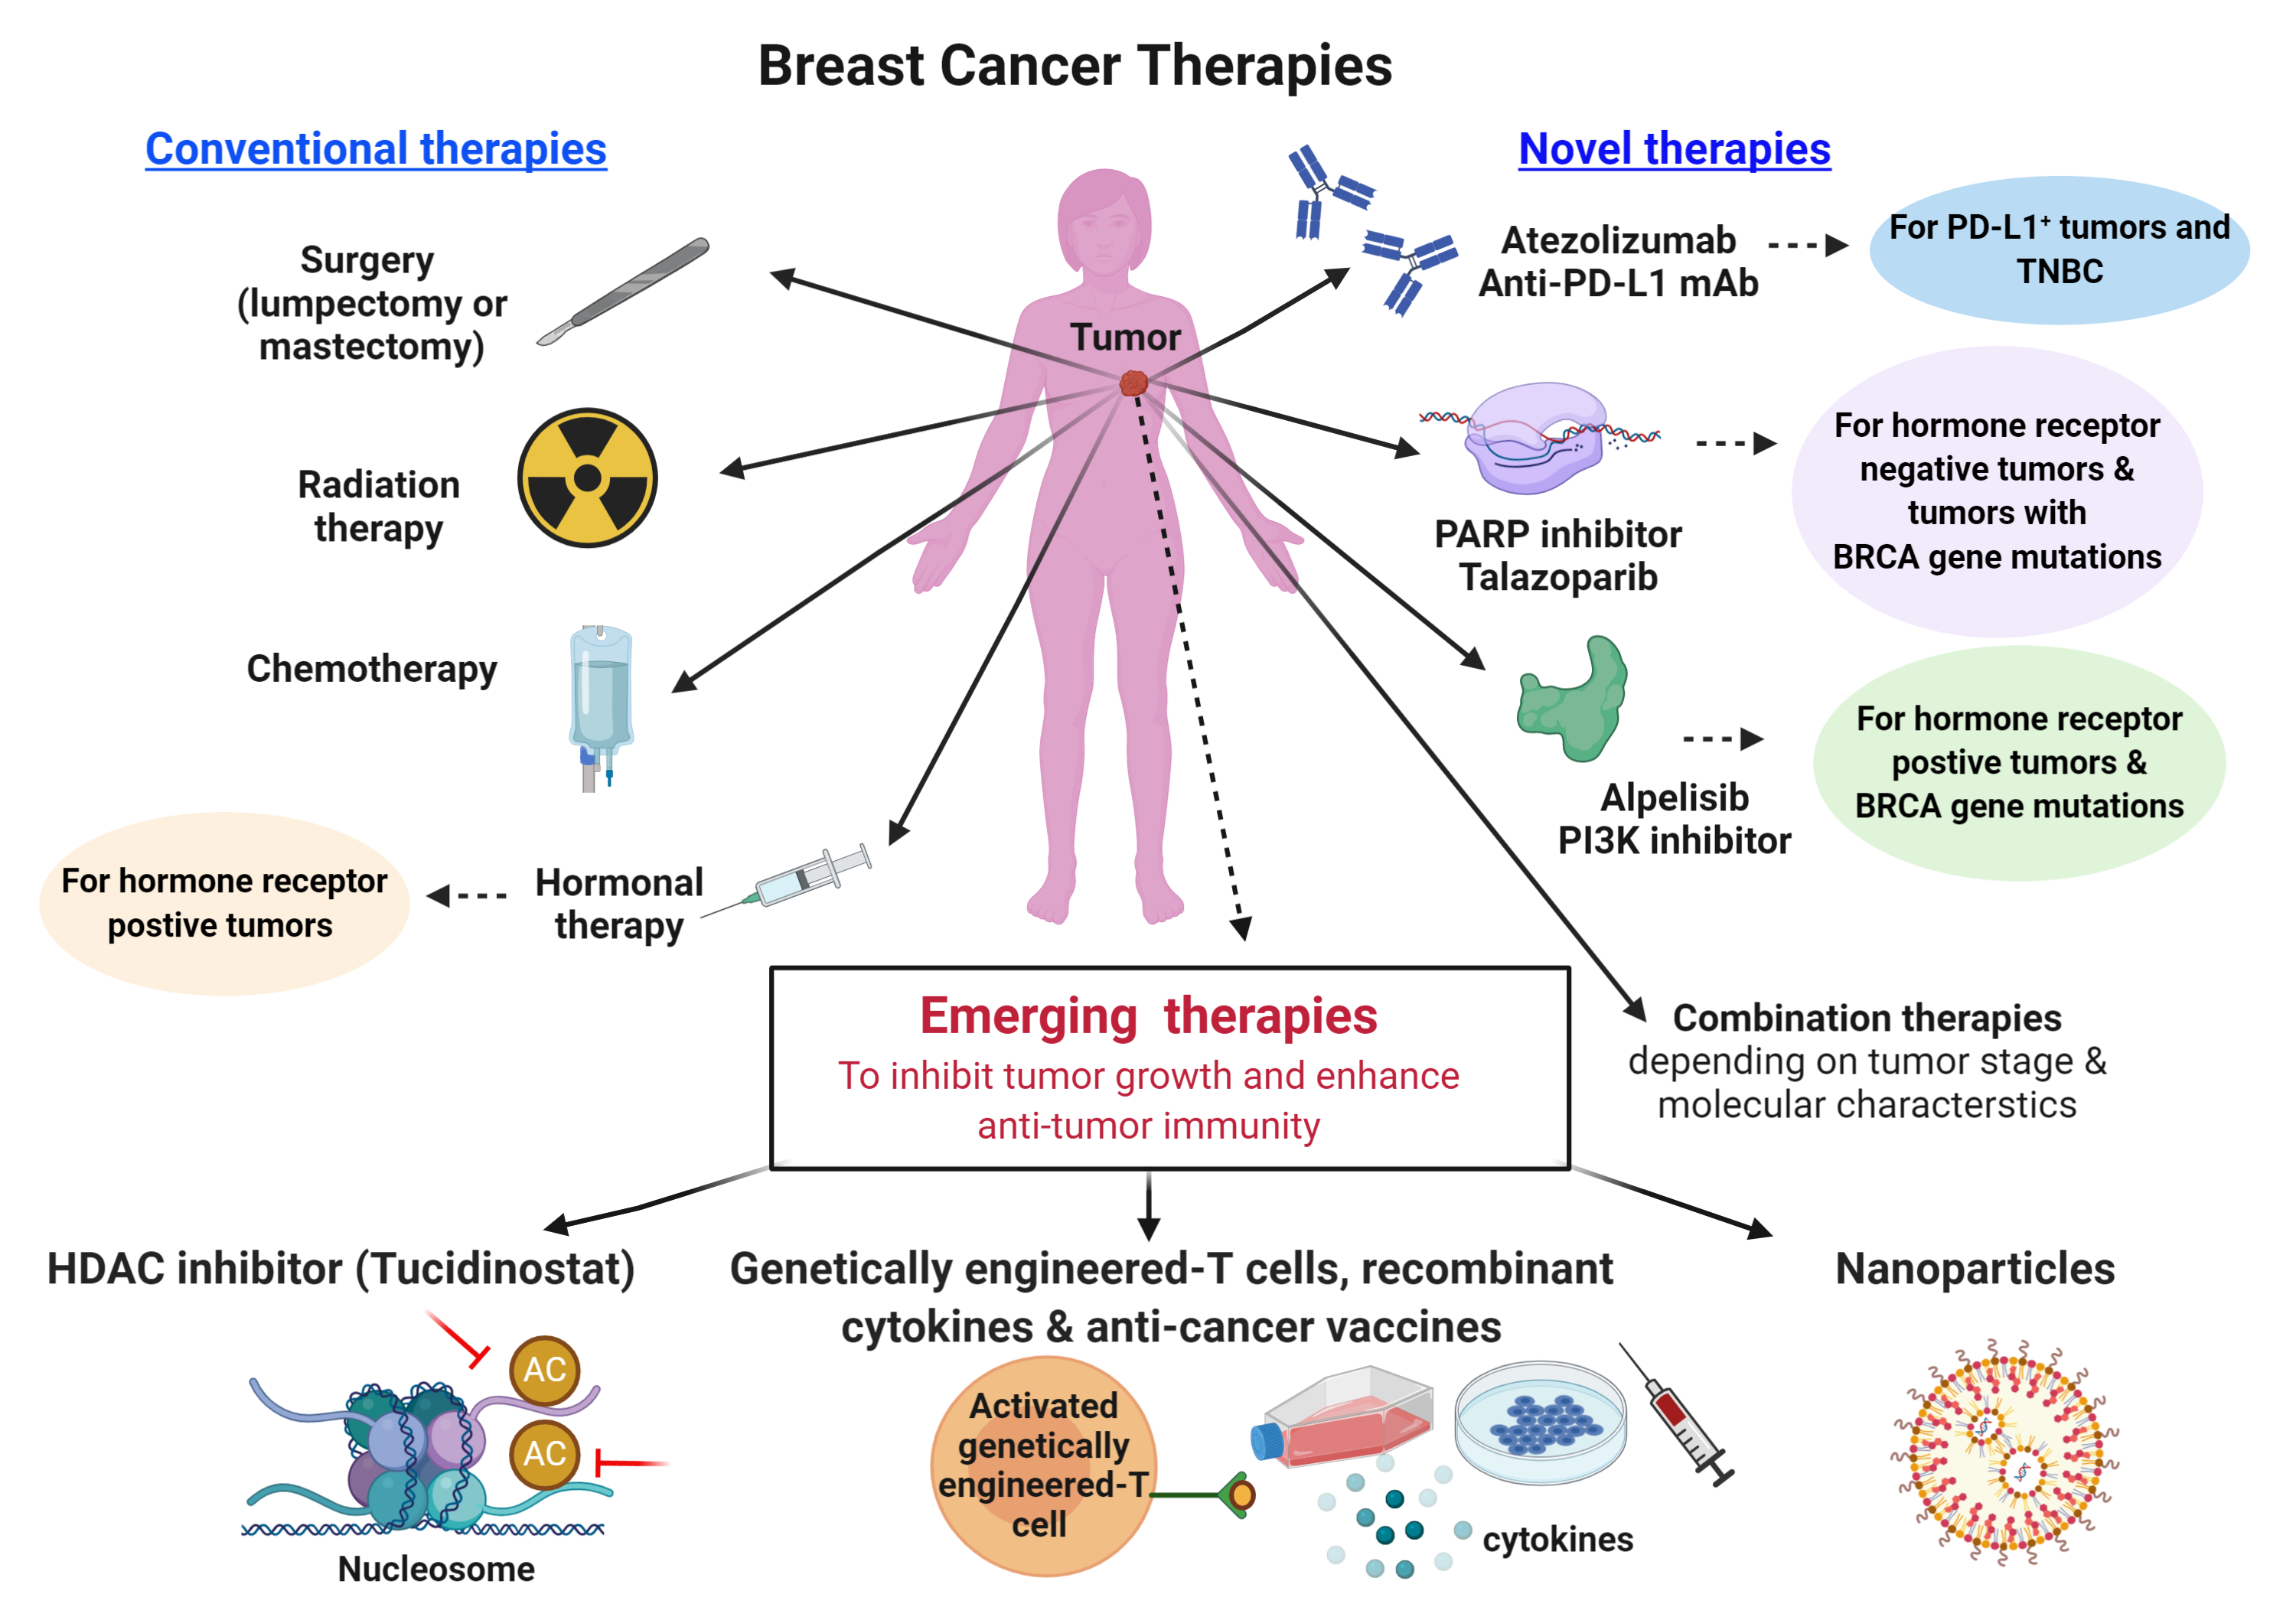 Figure 3. Currently available breast cancer therapies and proposed therapeutic strategies to improve clinical outcomes in patients who do not benefit from conventional therapies. TNBC, triple negative breast cancer; BRCA, BReast CAncer gene; PARP, poly (ADP-ribose) polymerase; PI3K, phosphatidylinositol 3-kinase; PD-L1, programmed cell death-ligand 1; HDAC, Histone deacetylase.